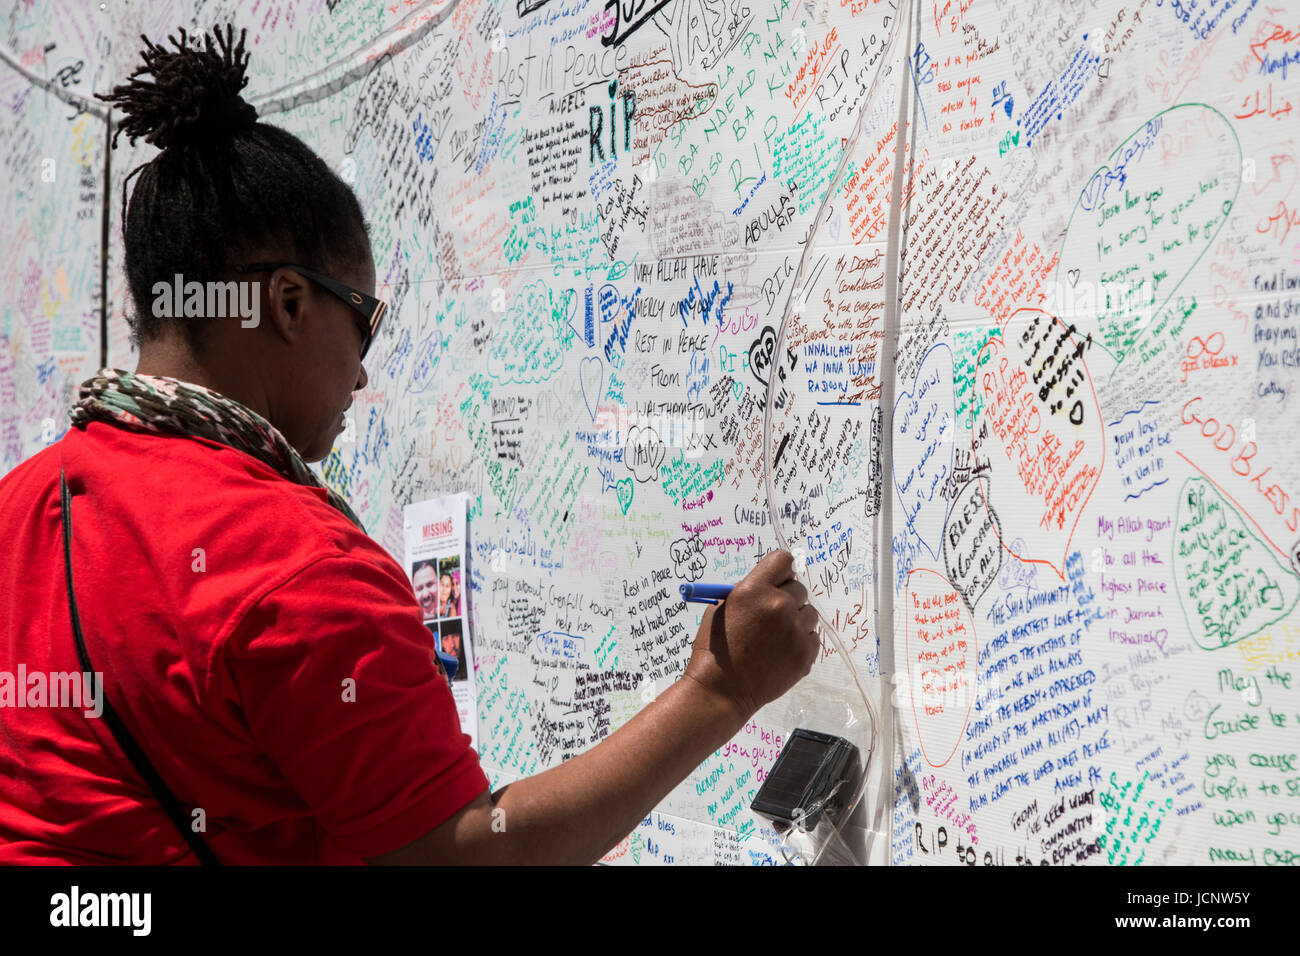 London, UK. 16th June, 2017. People leave condolence messages on a wall. The Notting Hill community mourns the victims - Stock Image